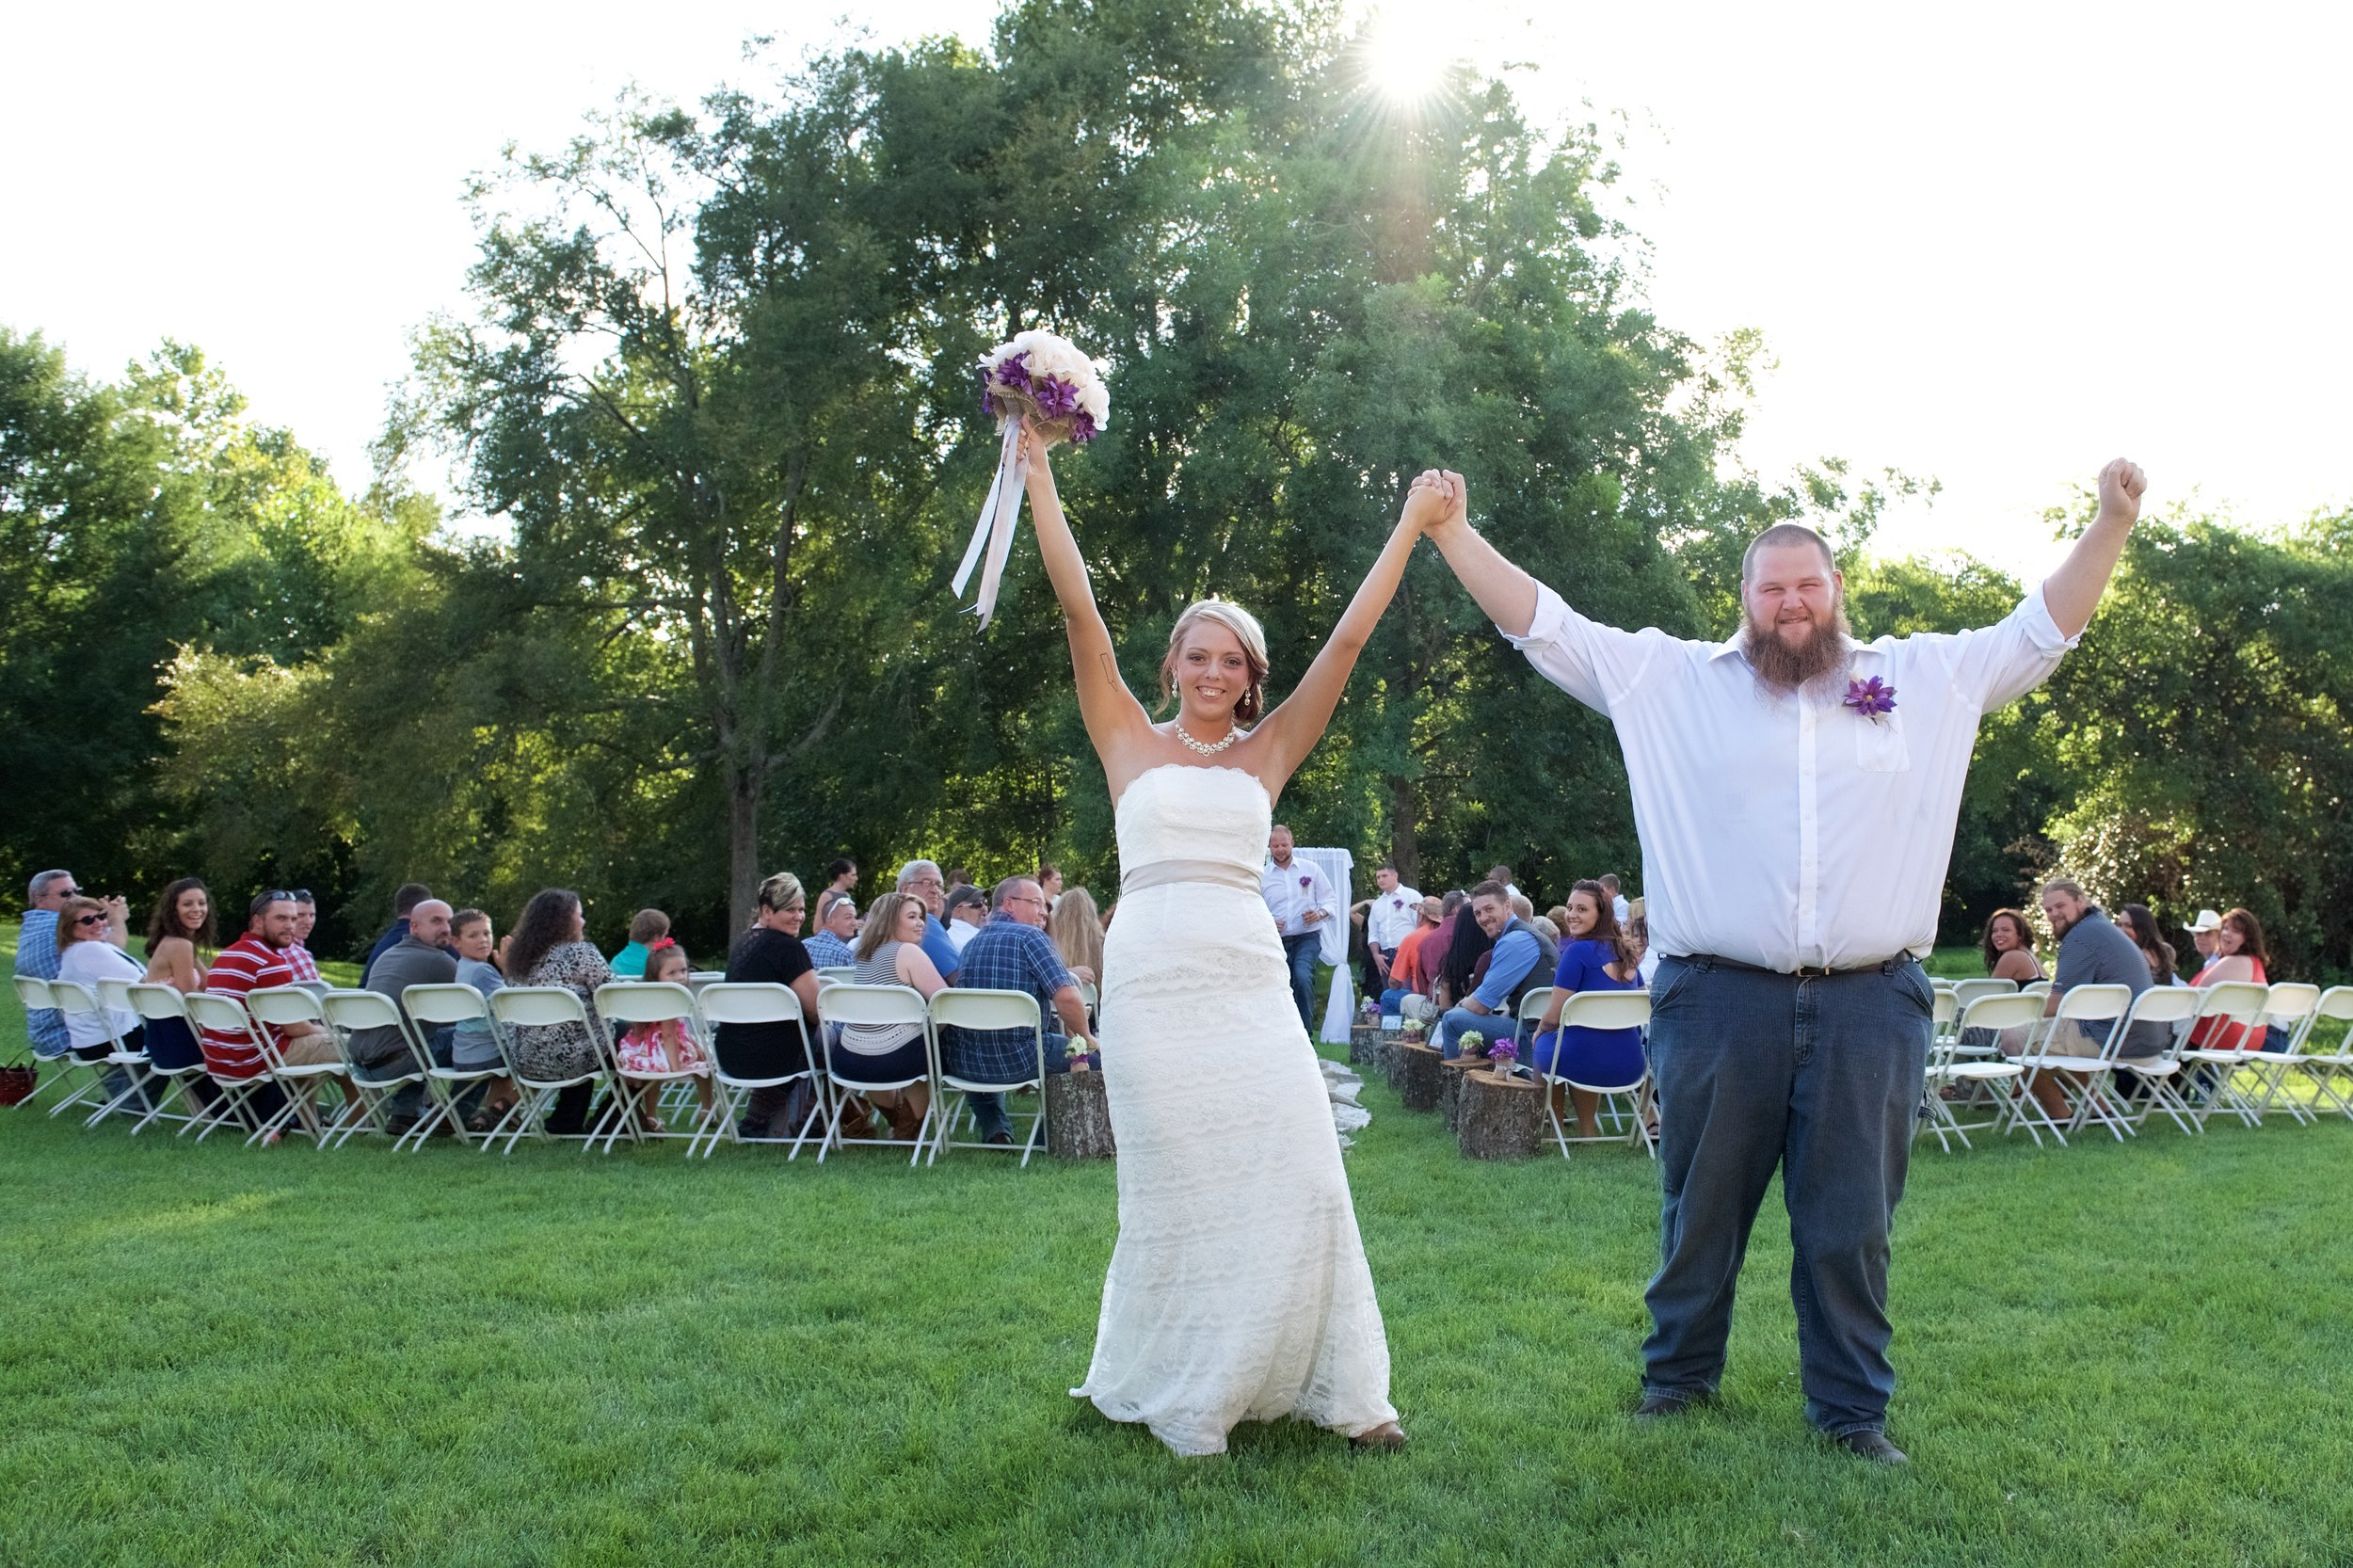 I love the sun peaking over the trees and how the light wraps this couple.